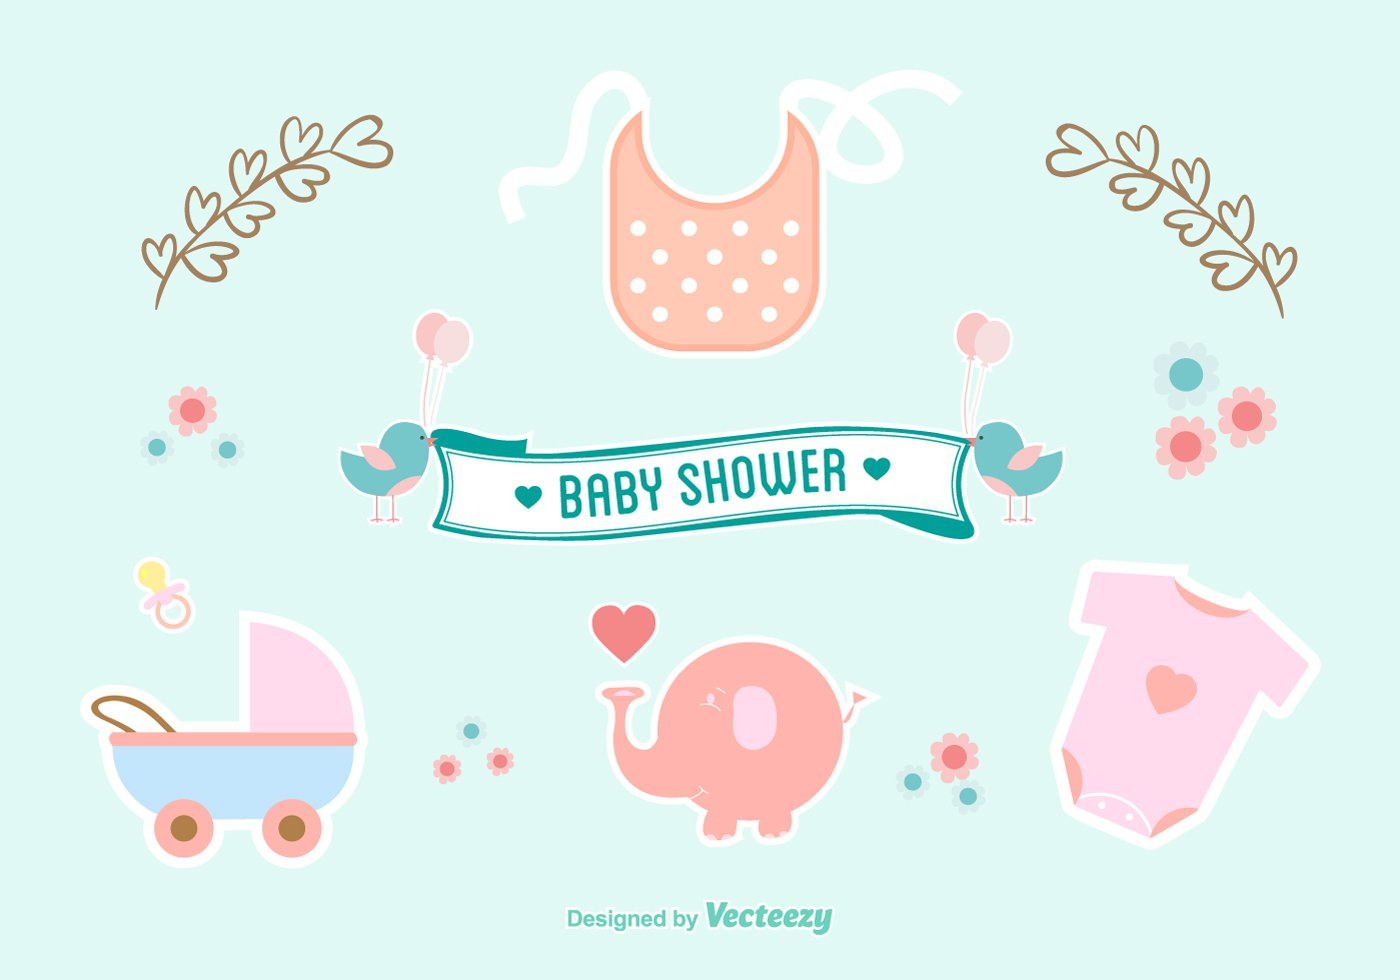 download baby shower wallpaper free gallery black and white owl clip art image owl drawings black and white clipart